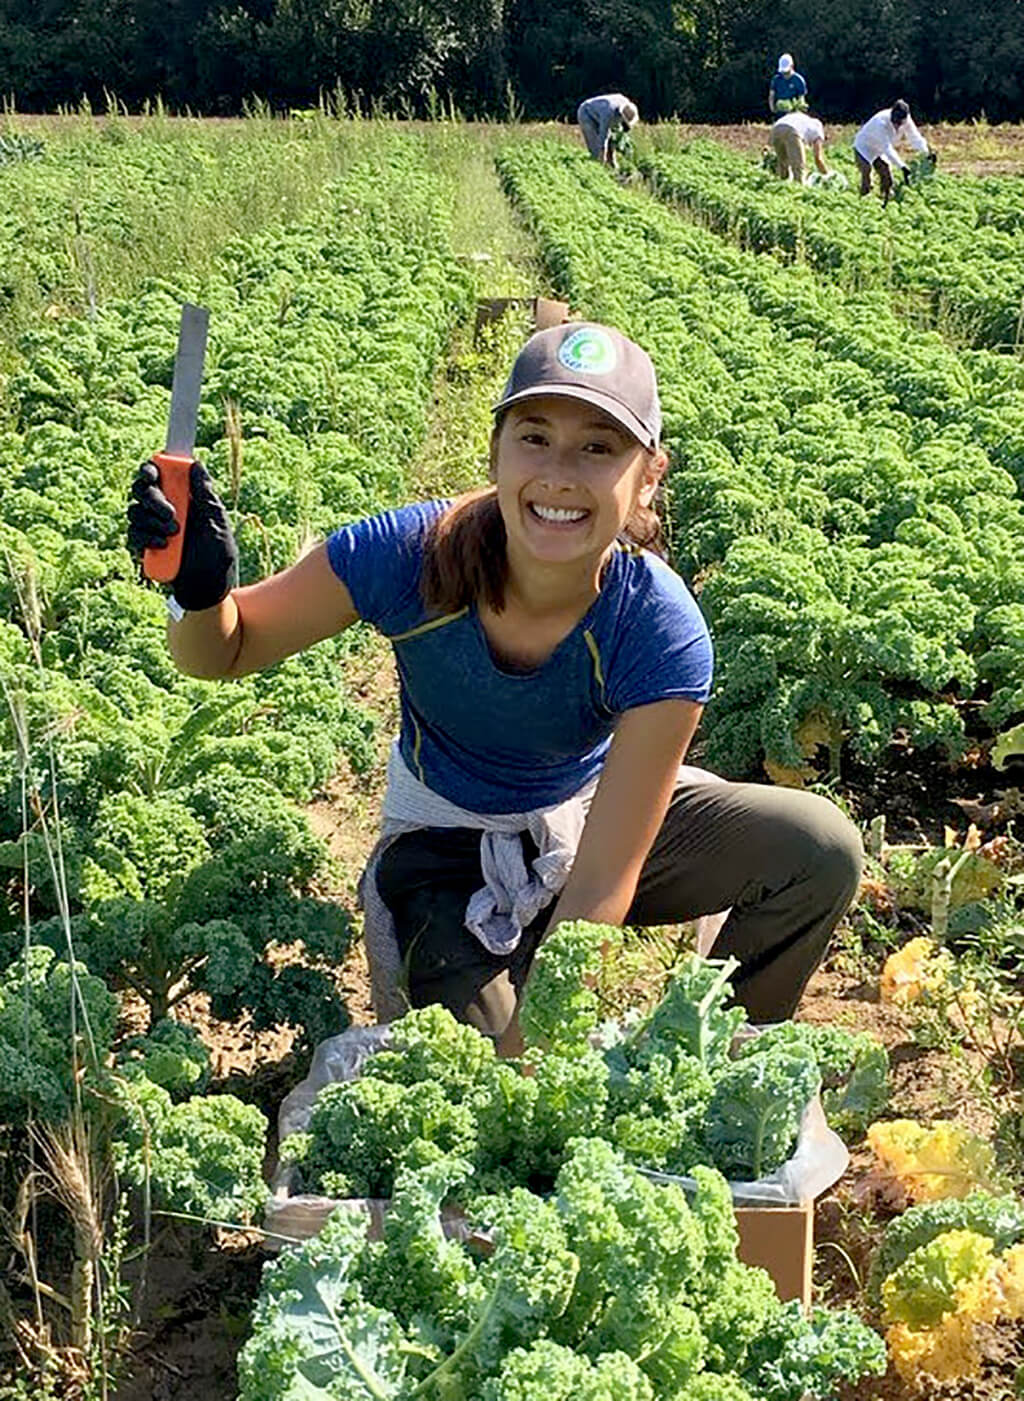 Yenny Martin harvesting boxes of curly kale